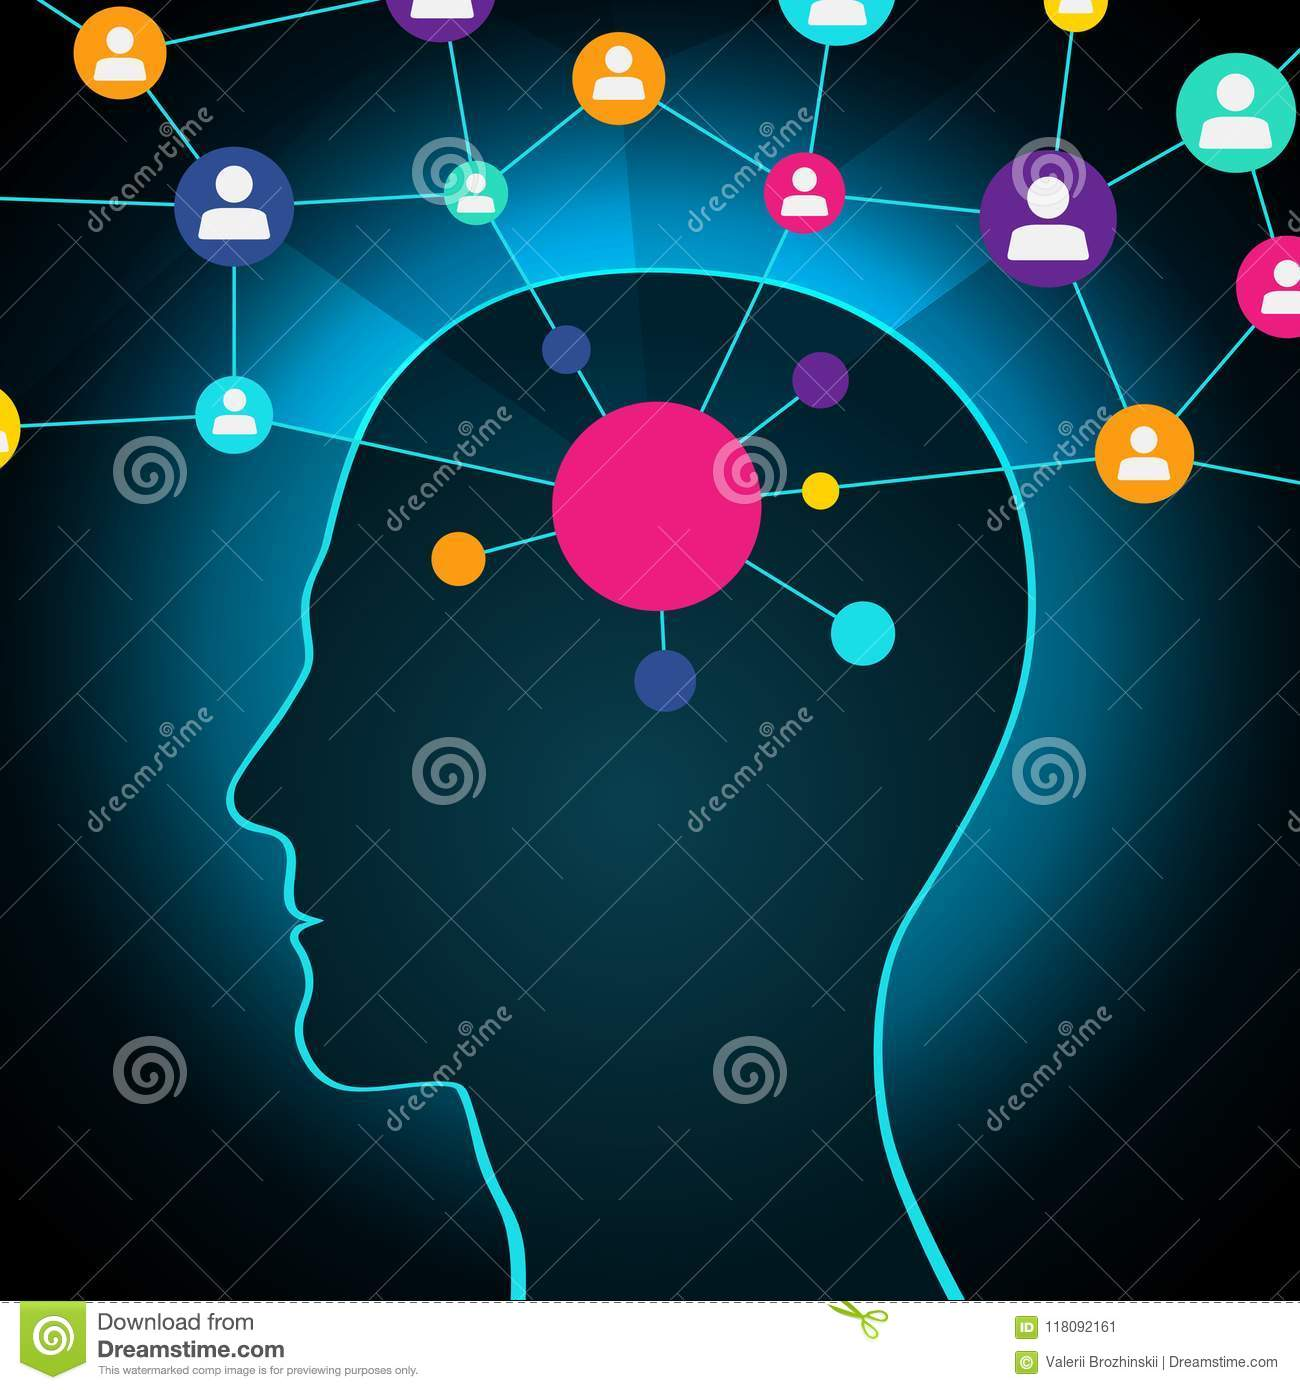 Person in a social network, communication, contacts, business. global network in the head. Flat design, icons